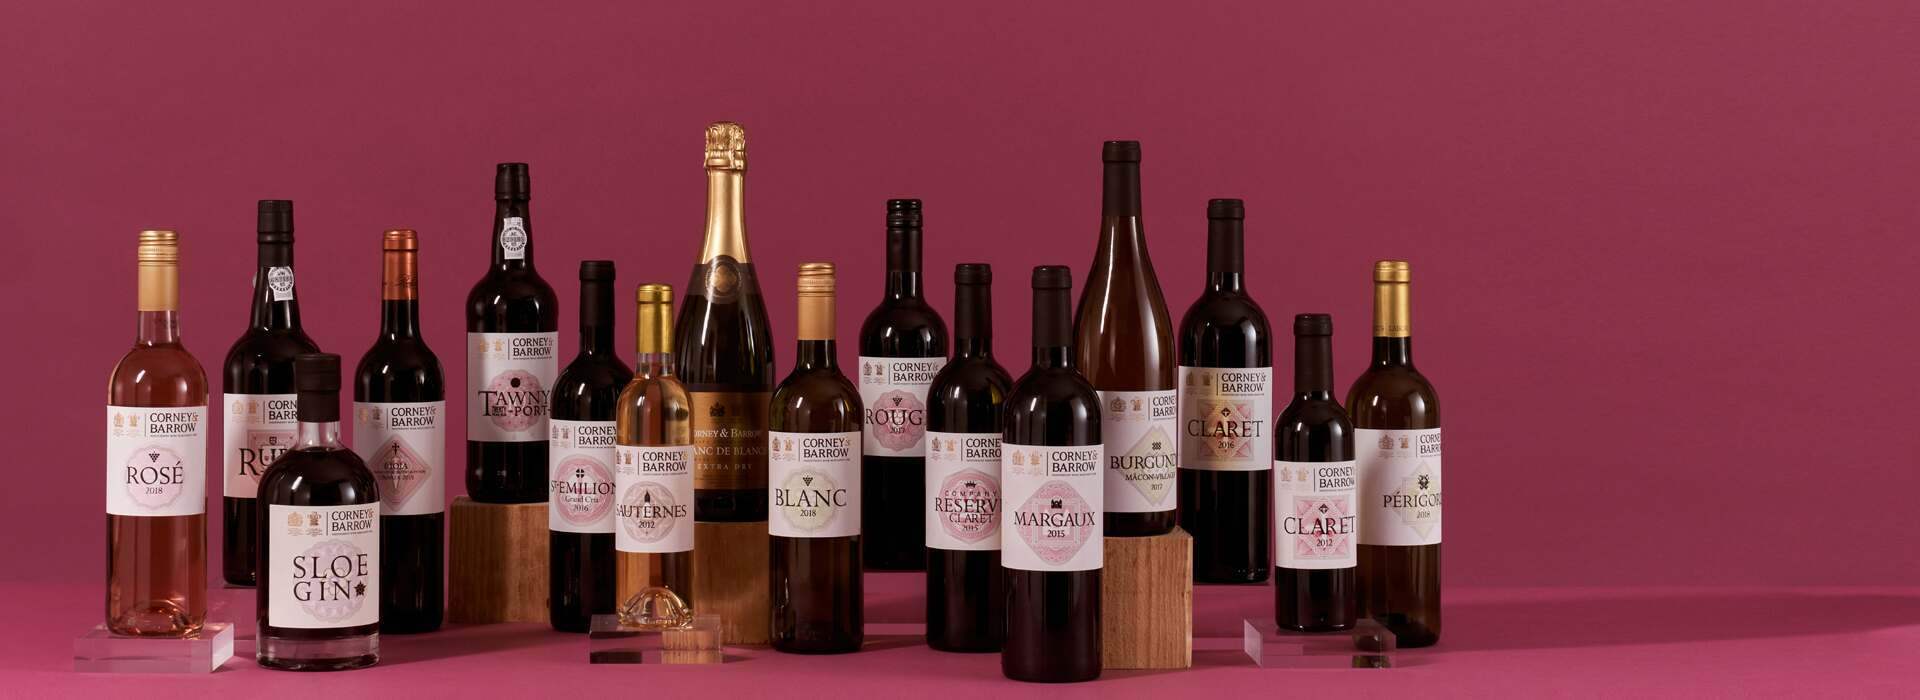 Corney and Barrow own label wine